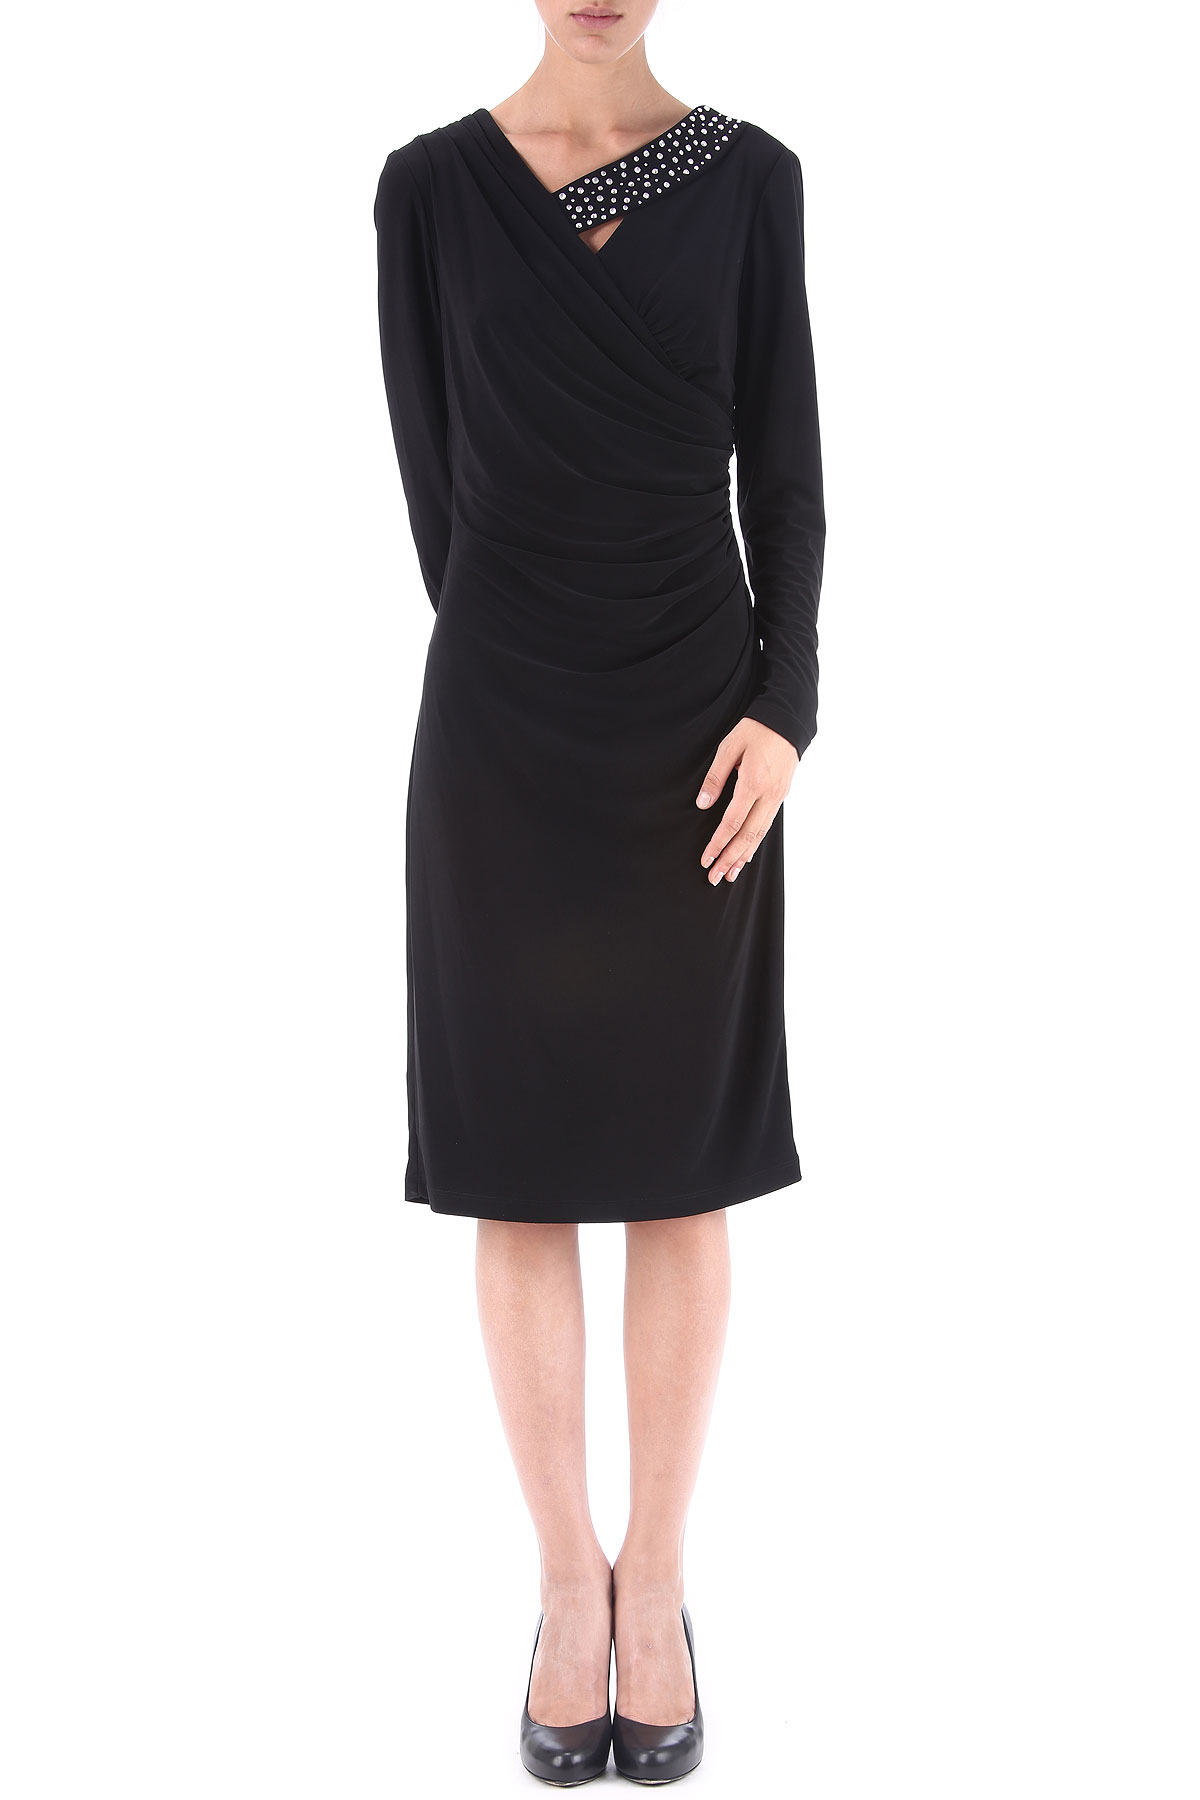 Joseph Ribkoff Dress for Women, Evening Cocktail Party On Sale in Outlet, Black, polyester, 2017, USA 16 - IT 50 USA-365997